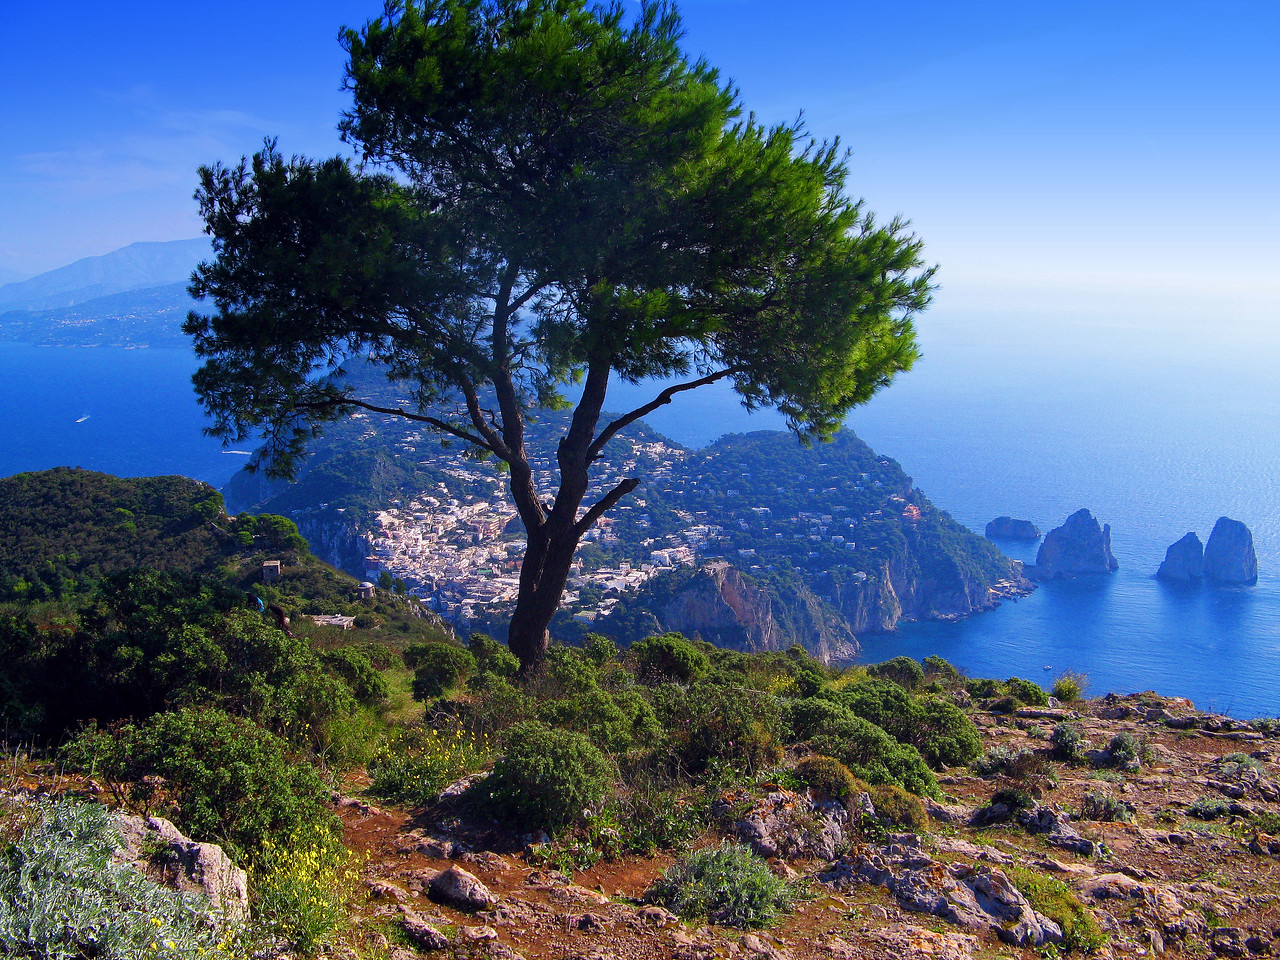 Italy--a view from the top of Capri Island